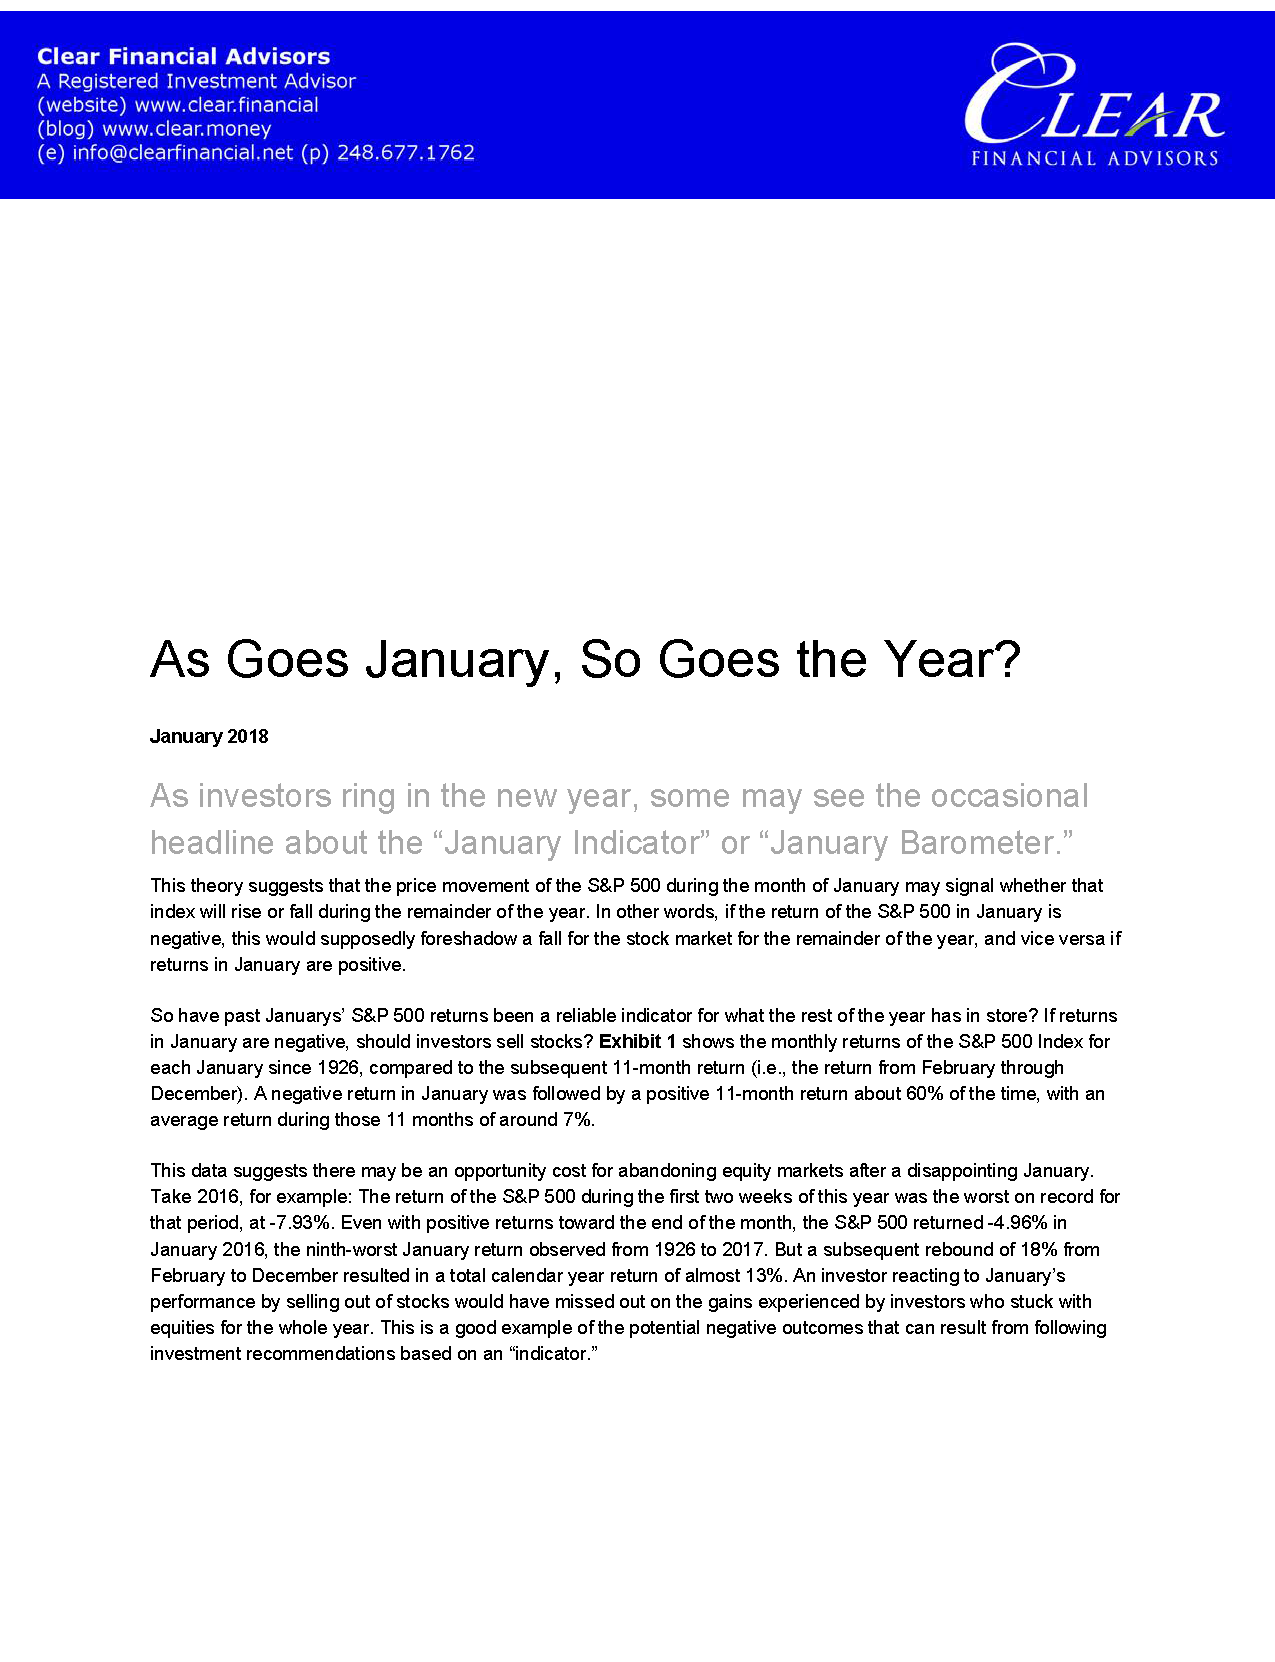 As Goes January So Goes the Year Special Report_Page_1